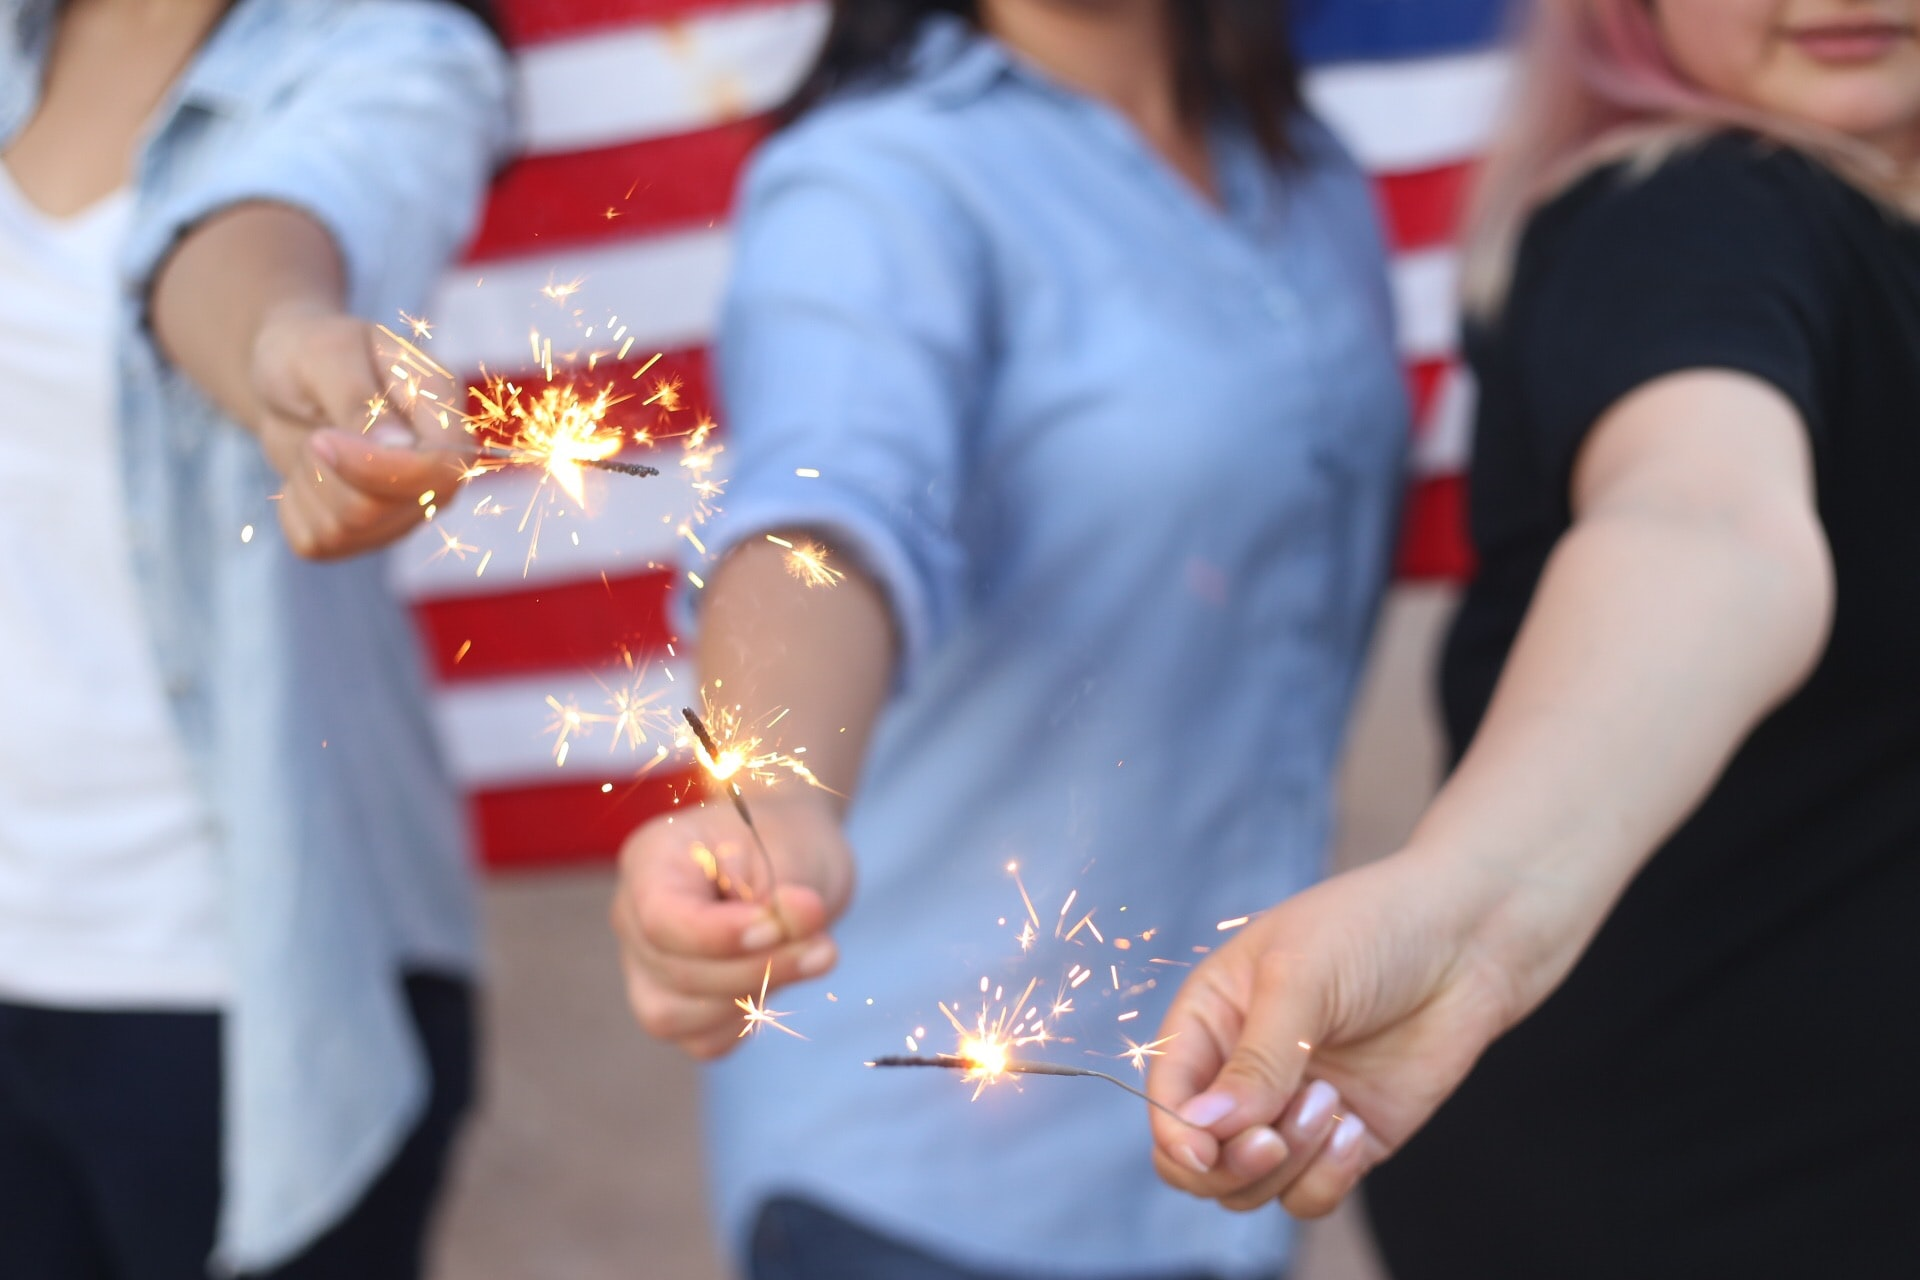 How to Stay Safe This Fourth of July